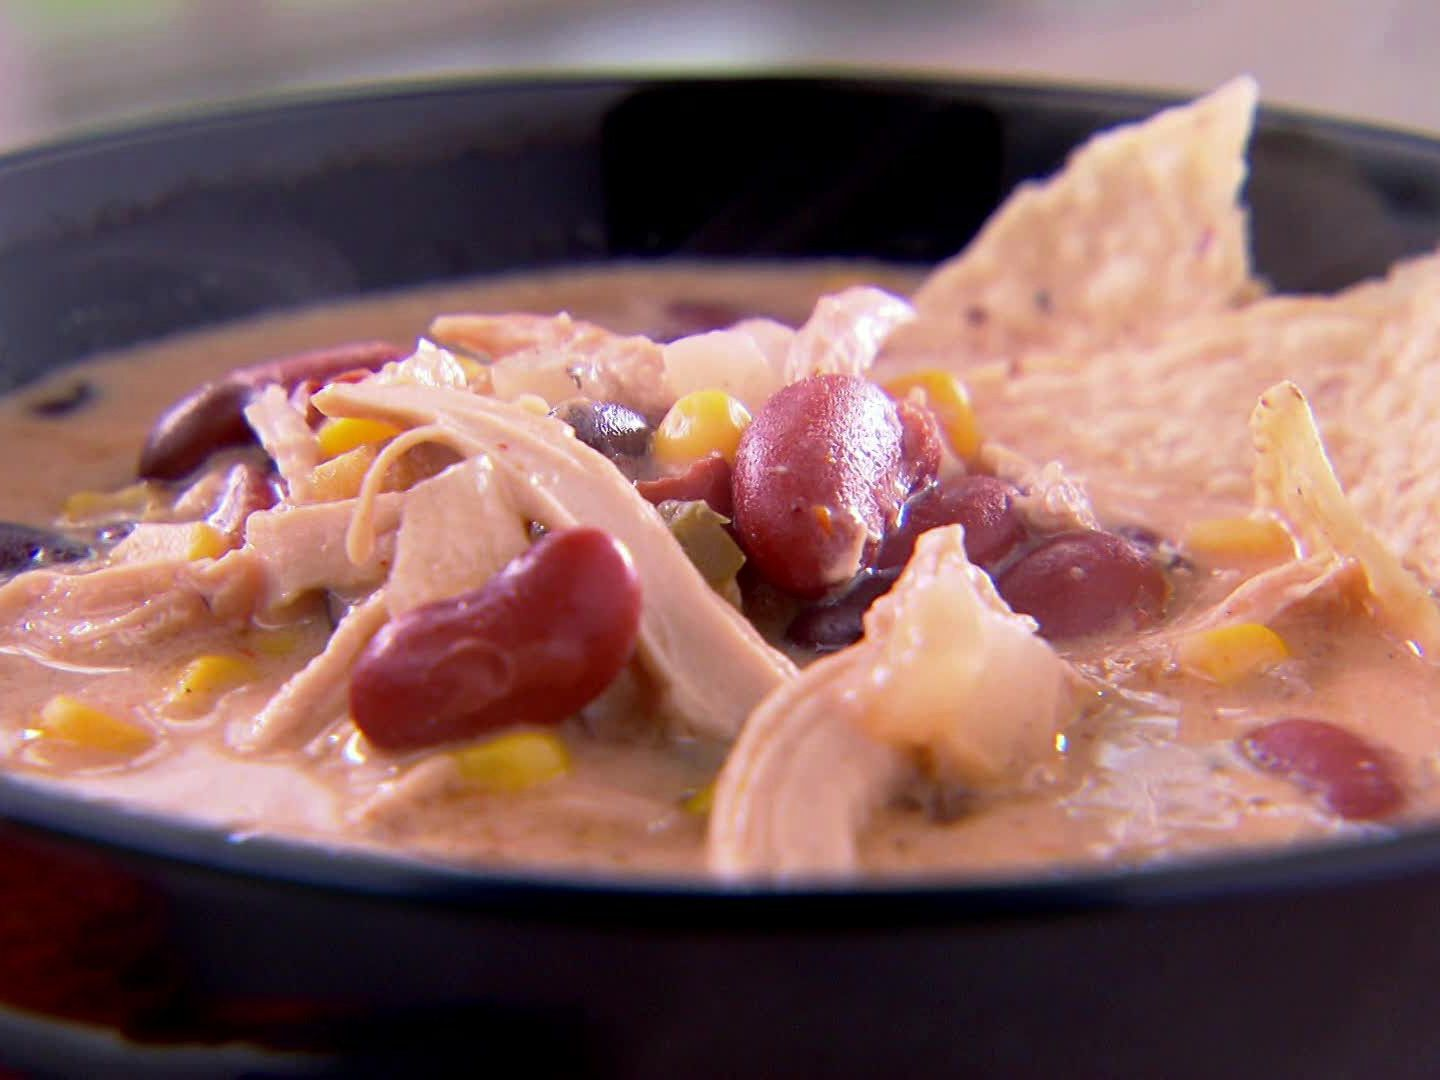 Trishas chicken tortilla soup recipe chicken tortilla soup stew trishas chicken tortilla soup recipe trisha yearwood food network forumfinder Image collections